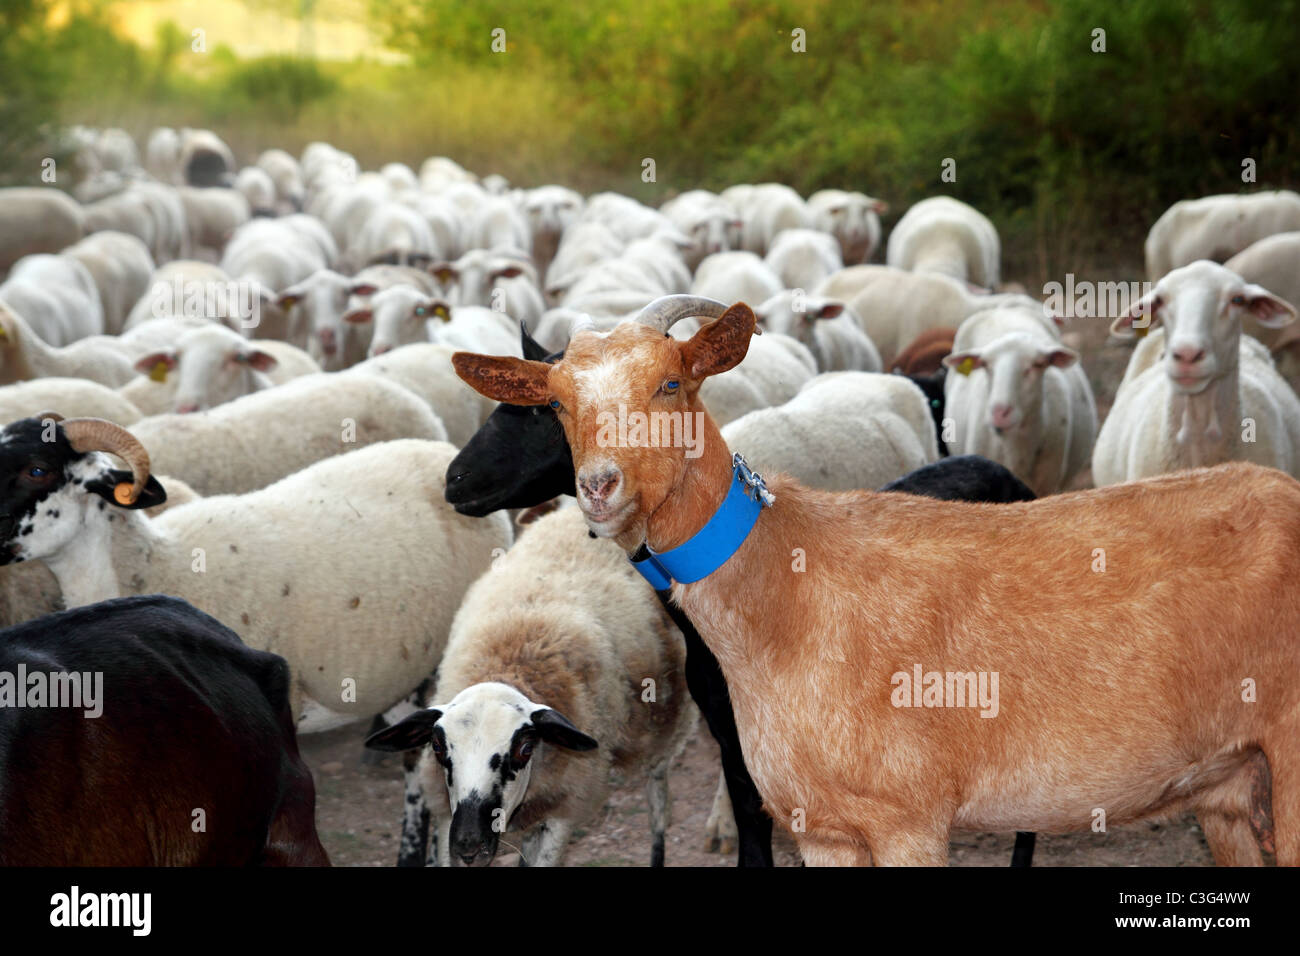 goats and sheep herd flock outdoor track nature animals Stock Photo